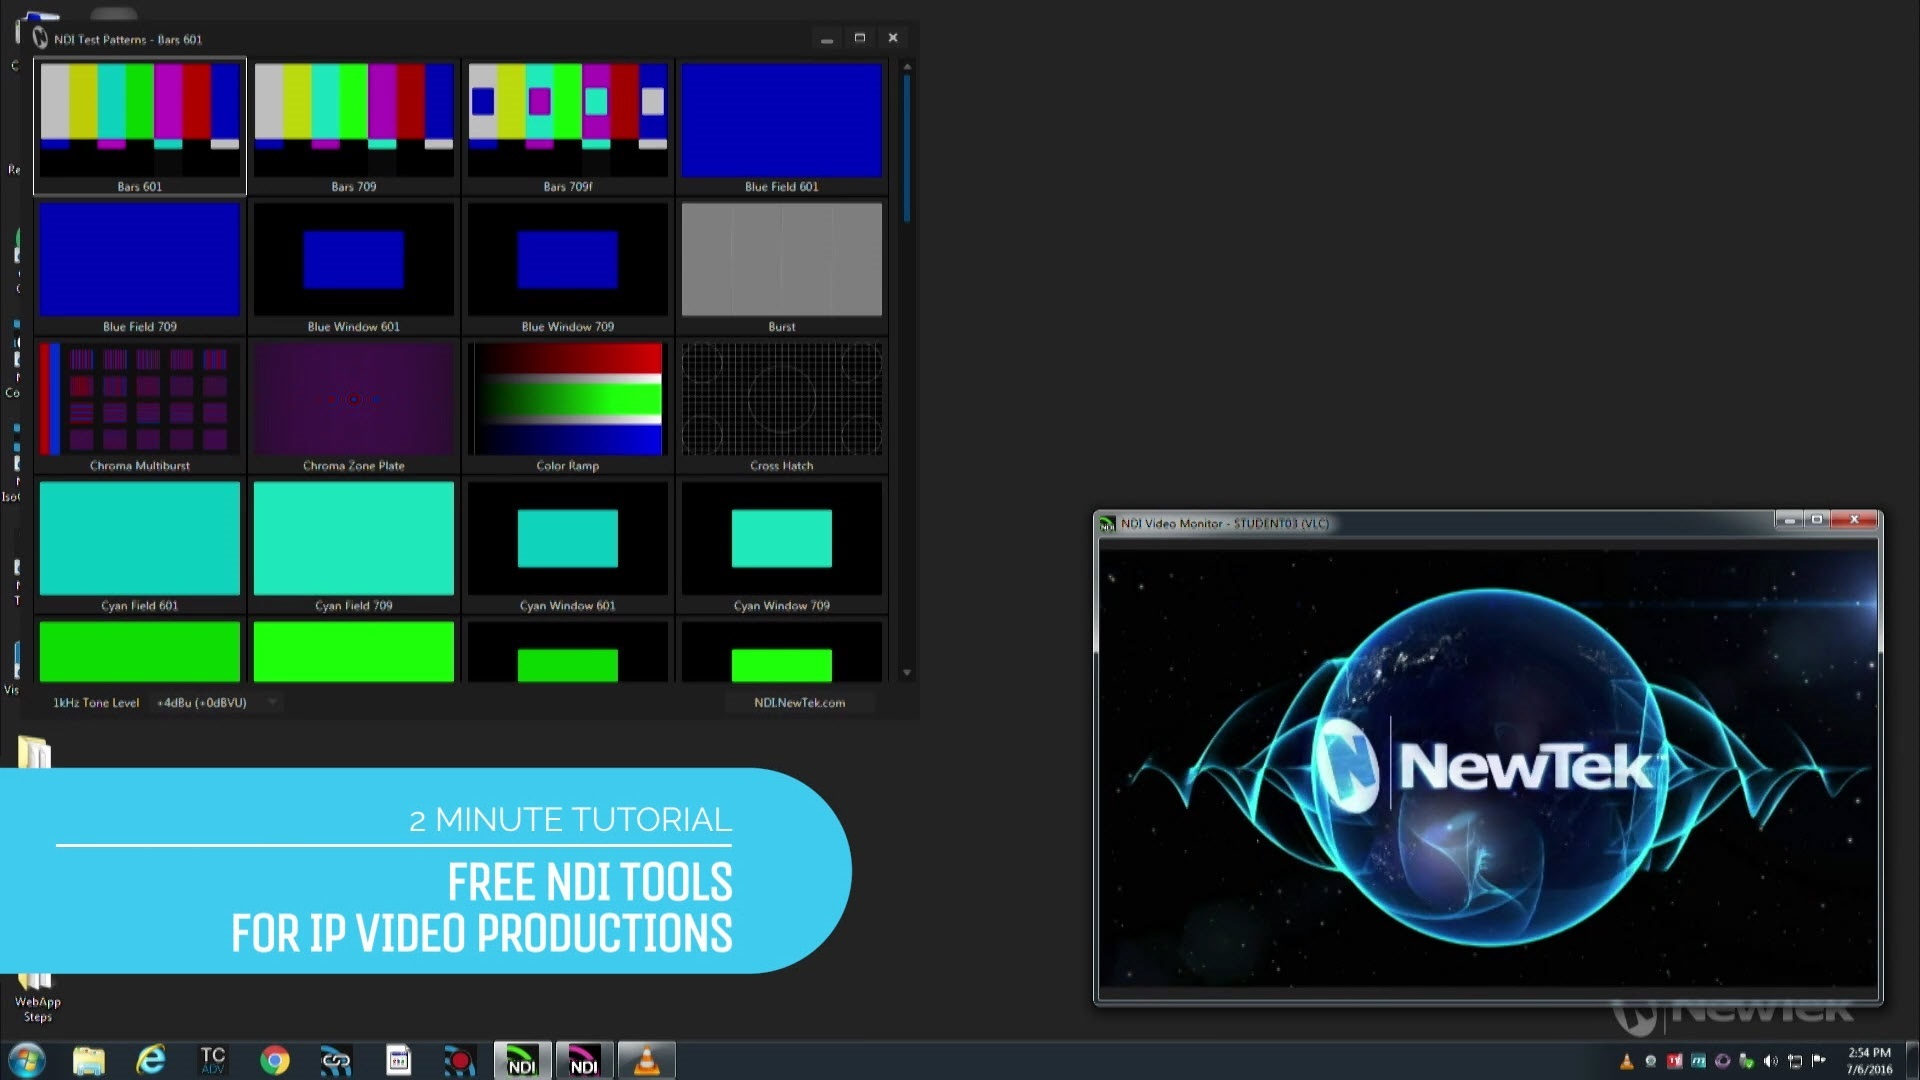 2-Minute Tutorial: Free NDI Tools for IP Video Productions